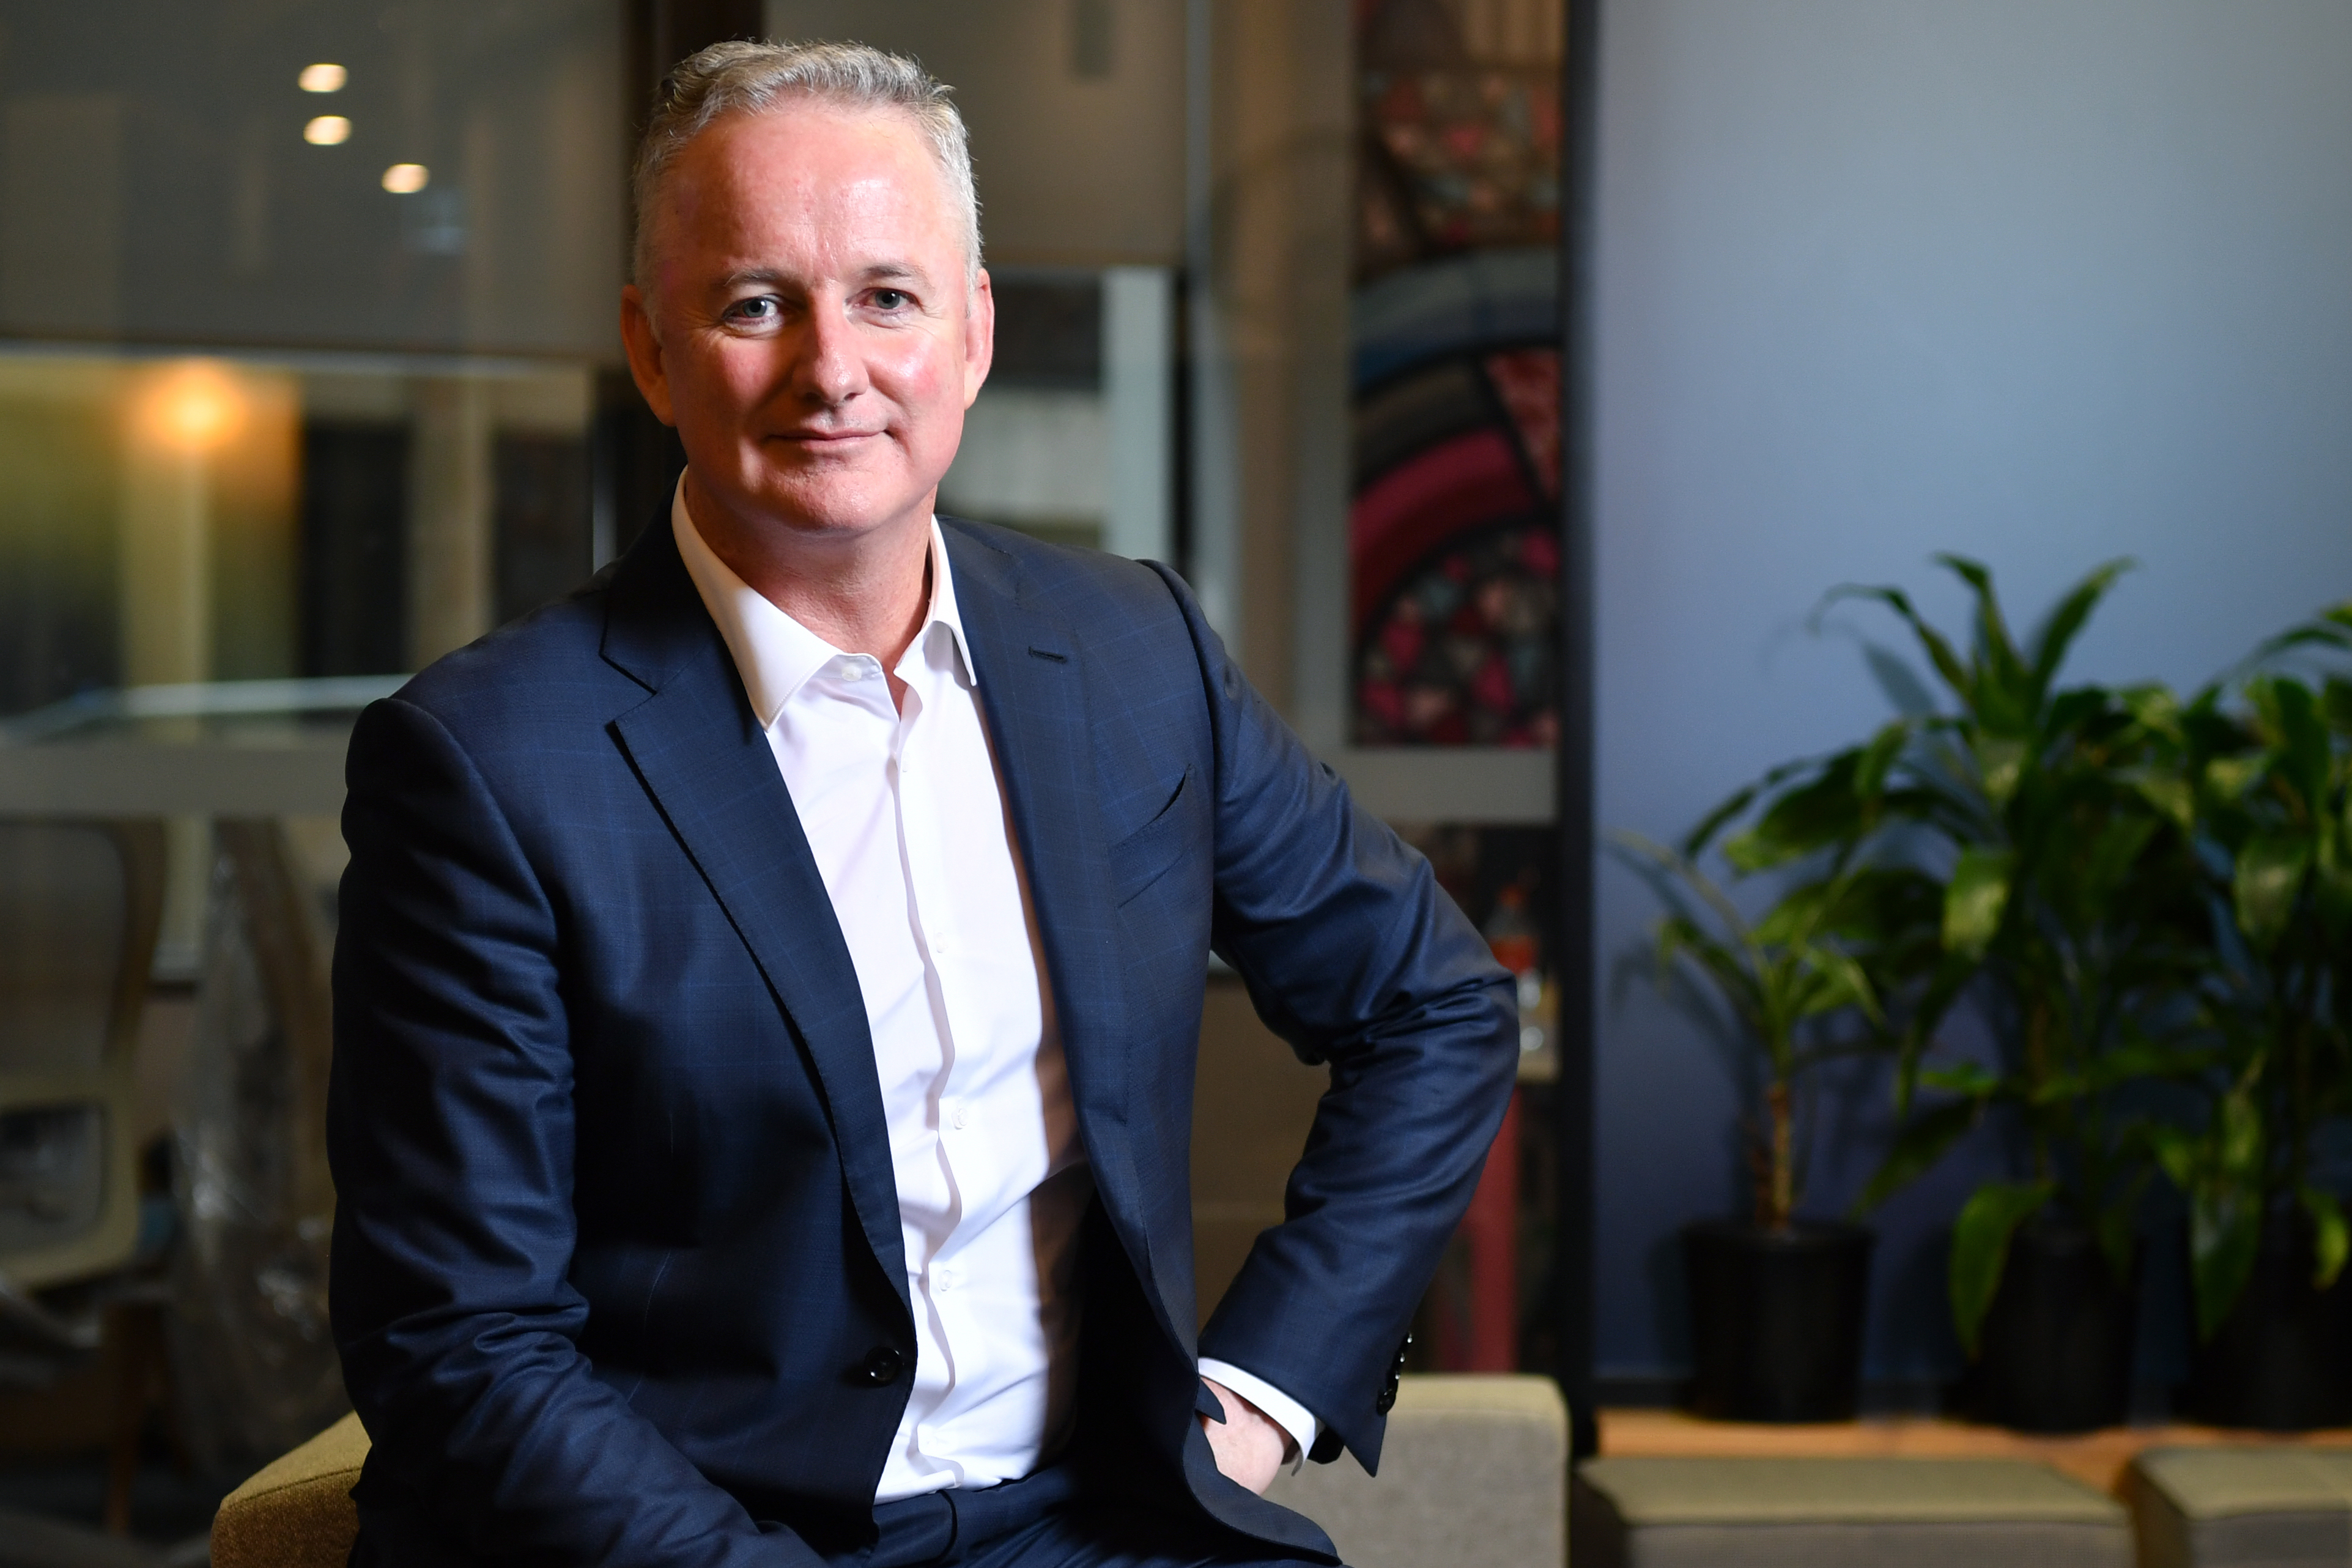 'They're trying to intimidate': Nine CEO hits out against anti-journalism crackdown